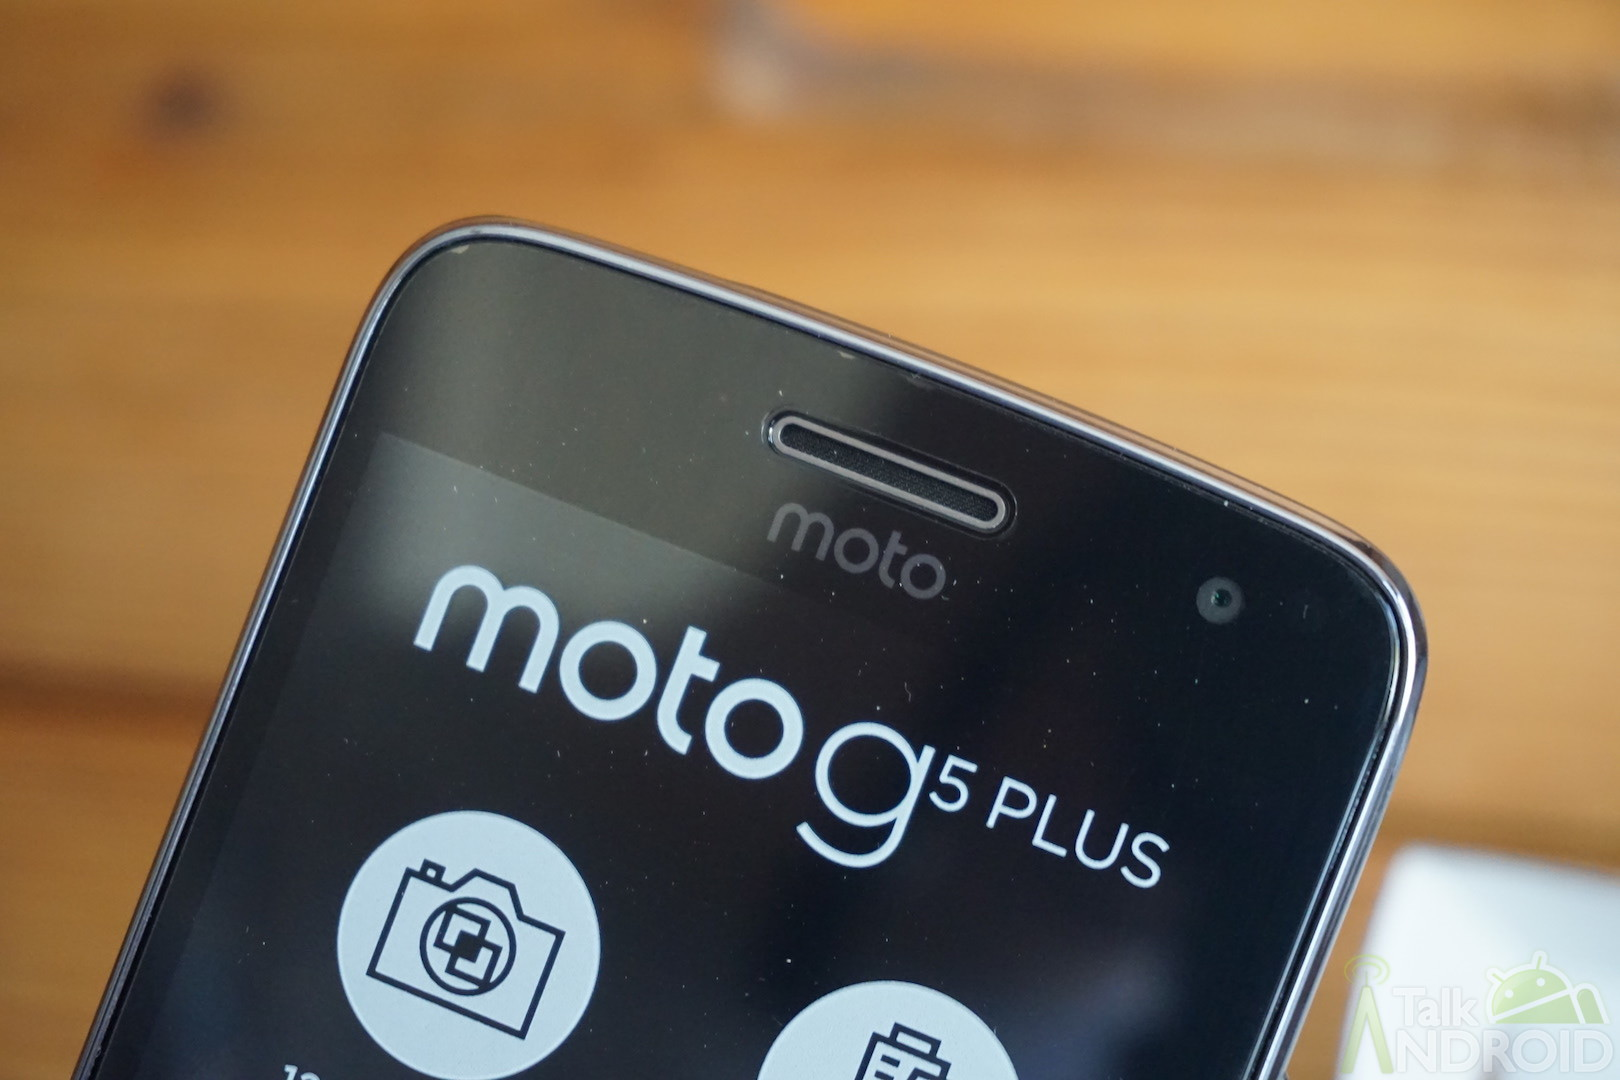 Whatever Optimization Lenovo Does With Qualcomm's Processors Is Working  Perfectly The Moto G5 Plus, Like The Moto Z Play, Packs The Snapdragon 625